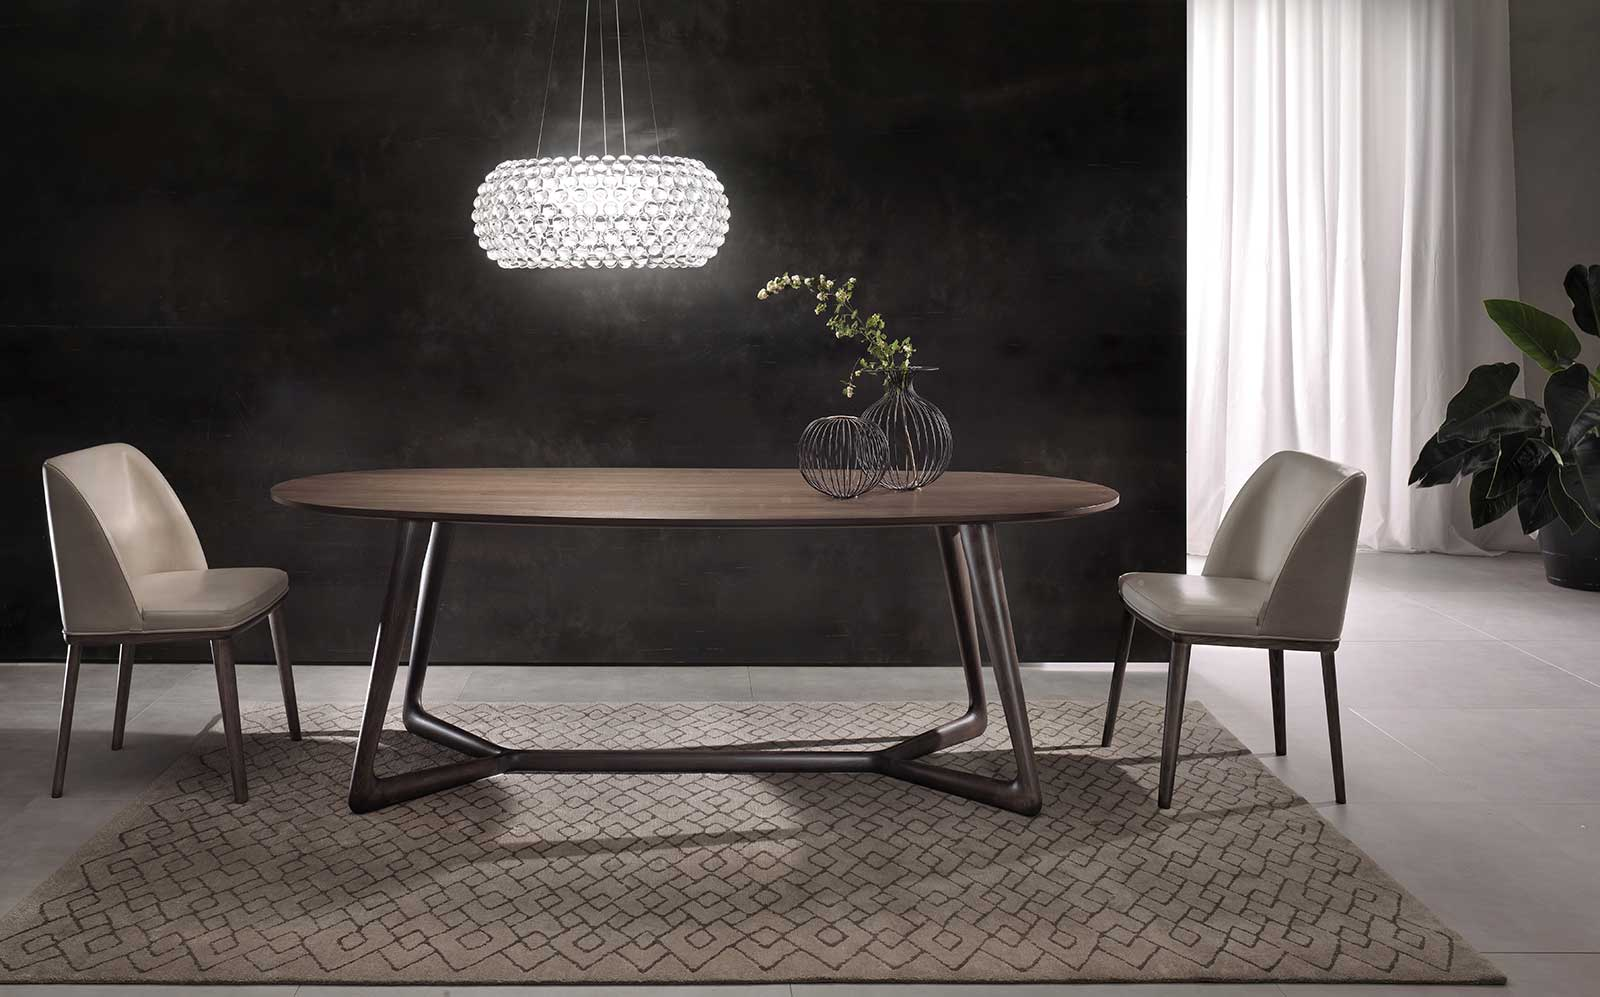 Over Oval Dining Table Buy Online Italy Dream Design